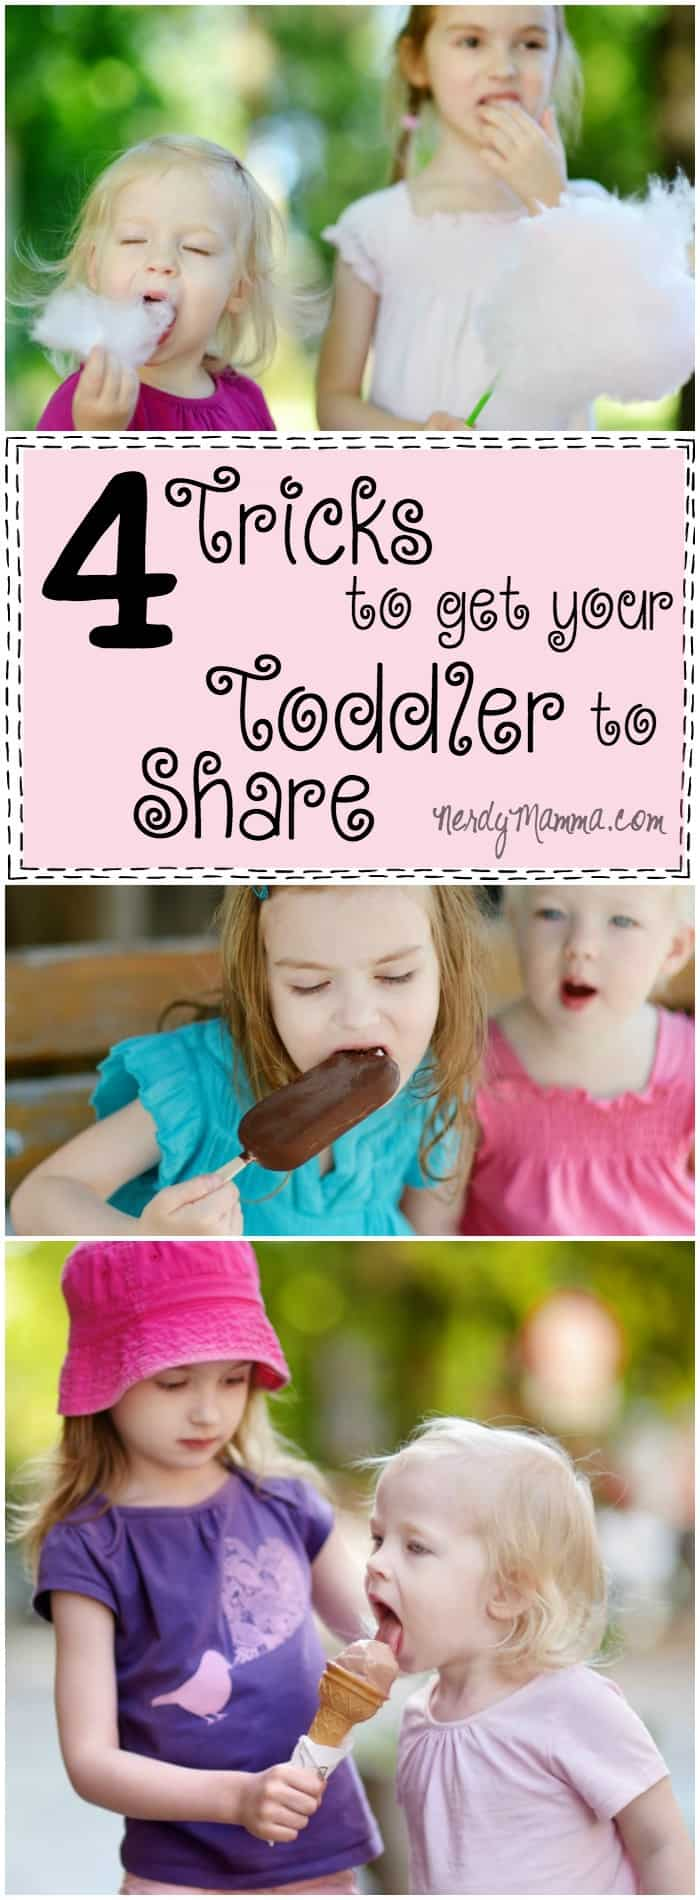 I love these 4 Tricks to get toddler to share! I can't wait to implement these (and maybe share them with my playgroup).